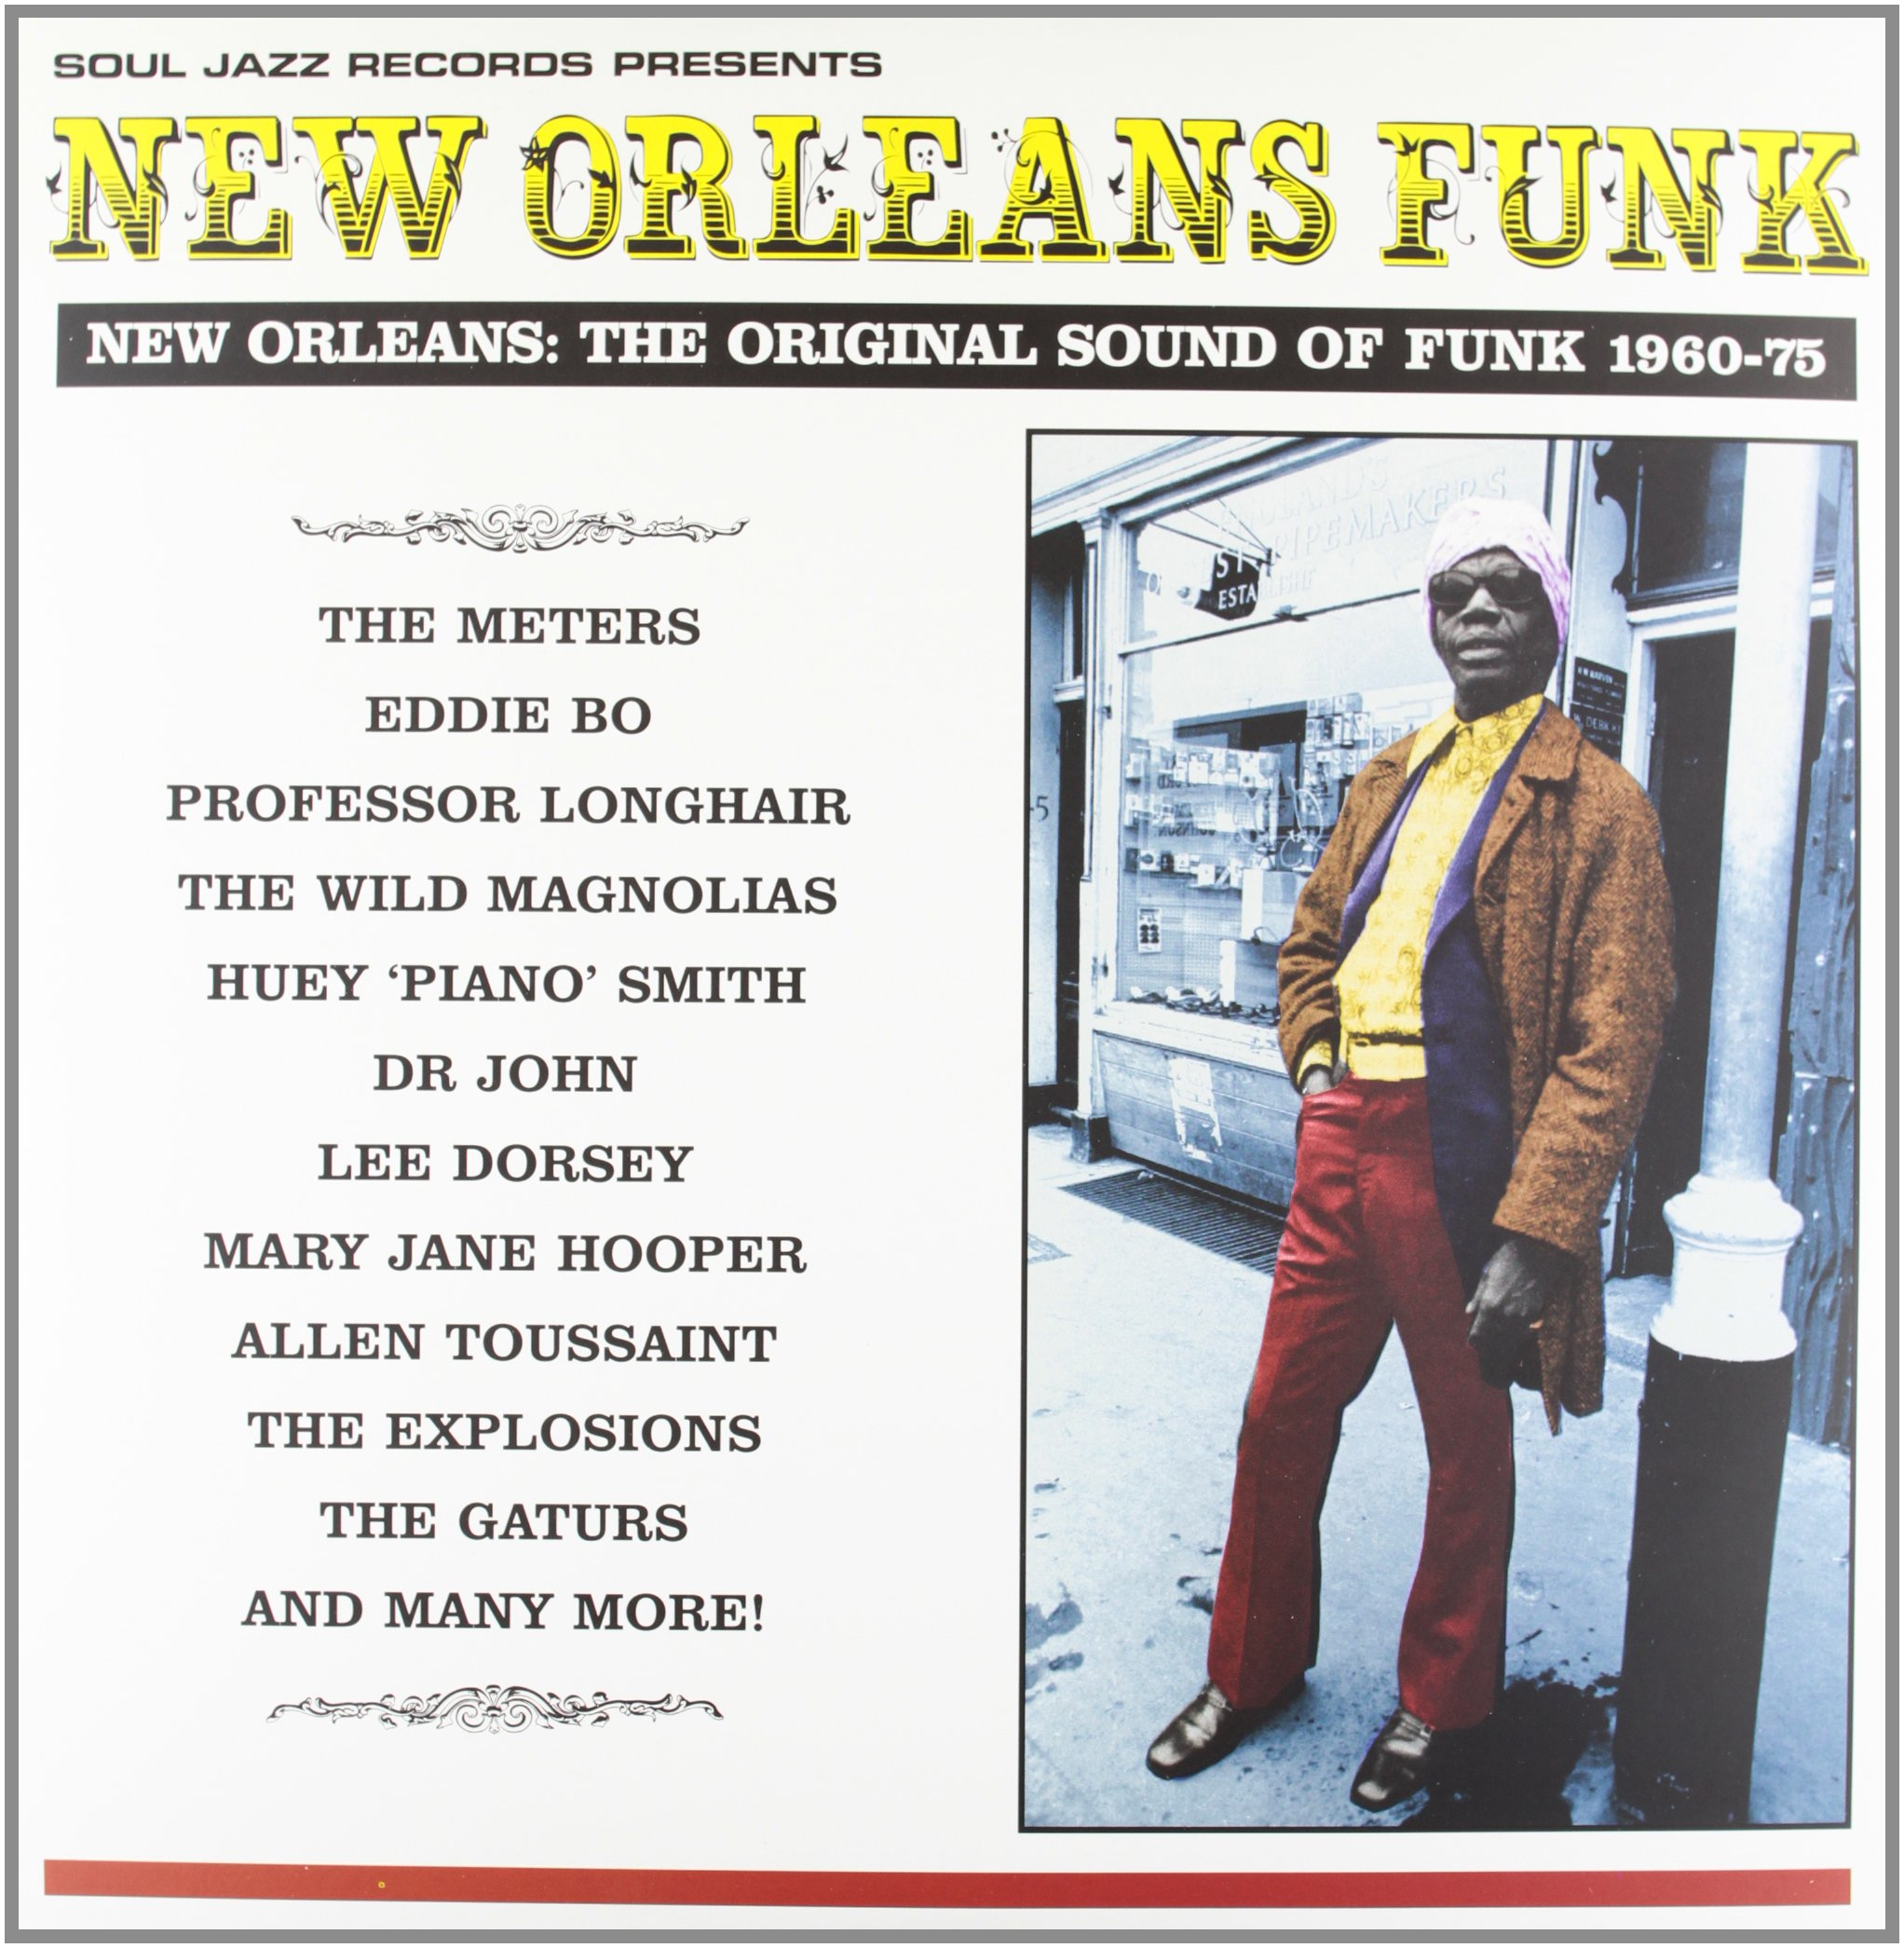 New Orleans Funk: New Orleans - The Original Sound of Funk 1960-75 by VINYL